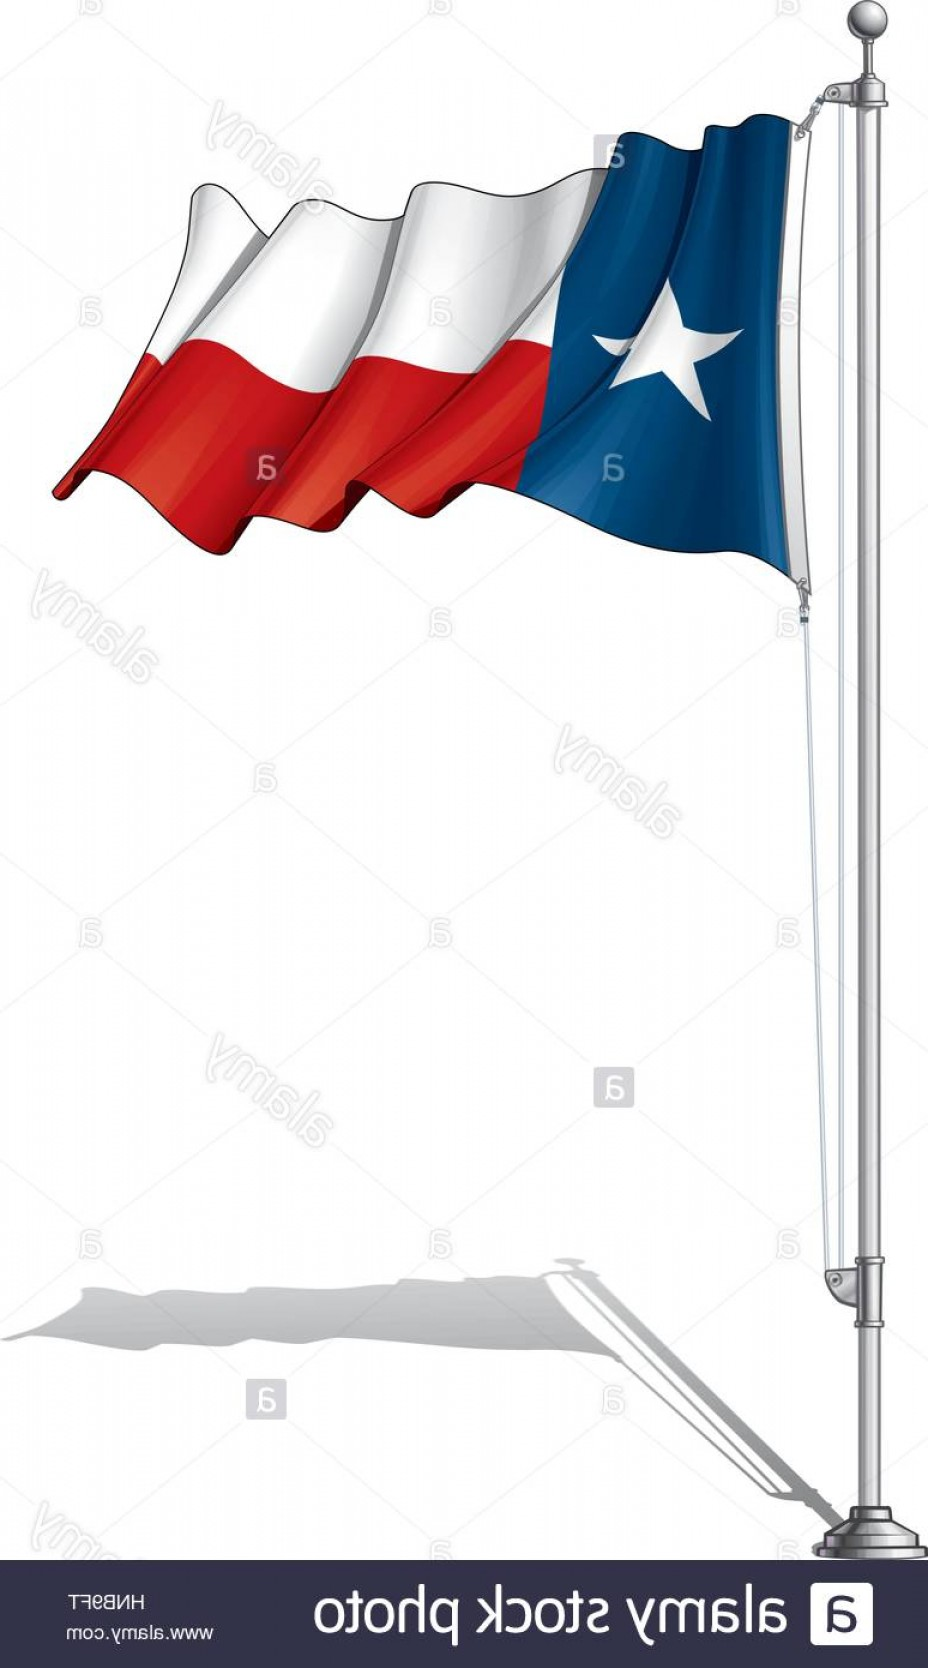 Texas Flag Vector Art: Stock Photo Vector Illustration Of A Waving Texas Flag Fasten On A Flag Pole Flag